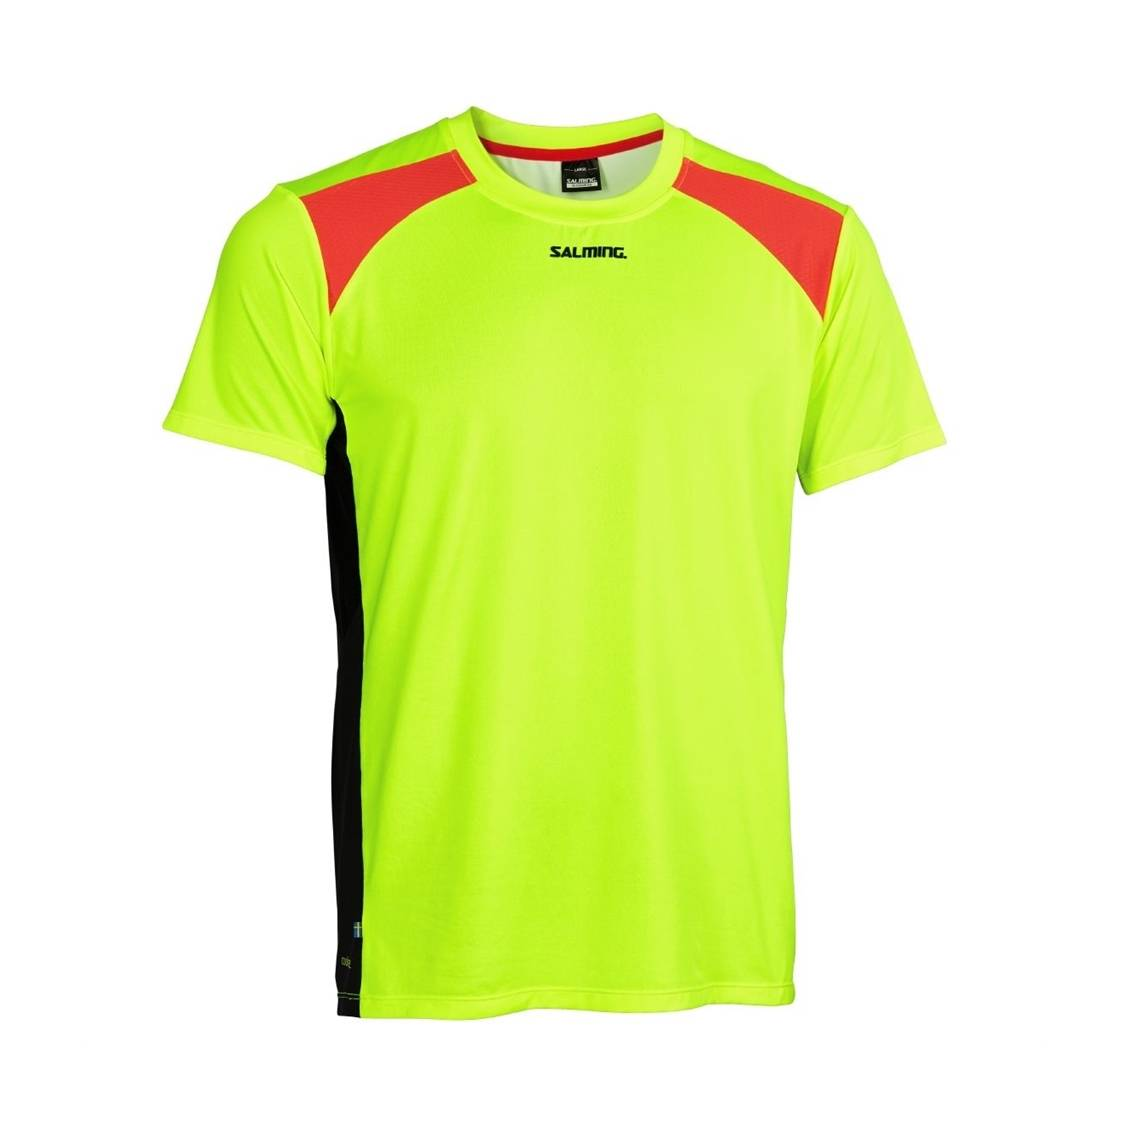 Salming Challenge Tee Yellow M